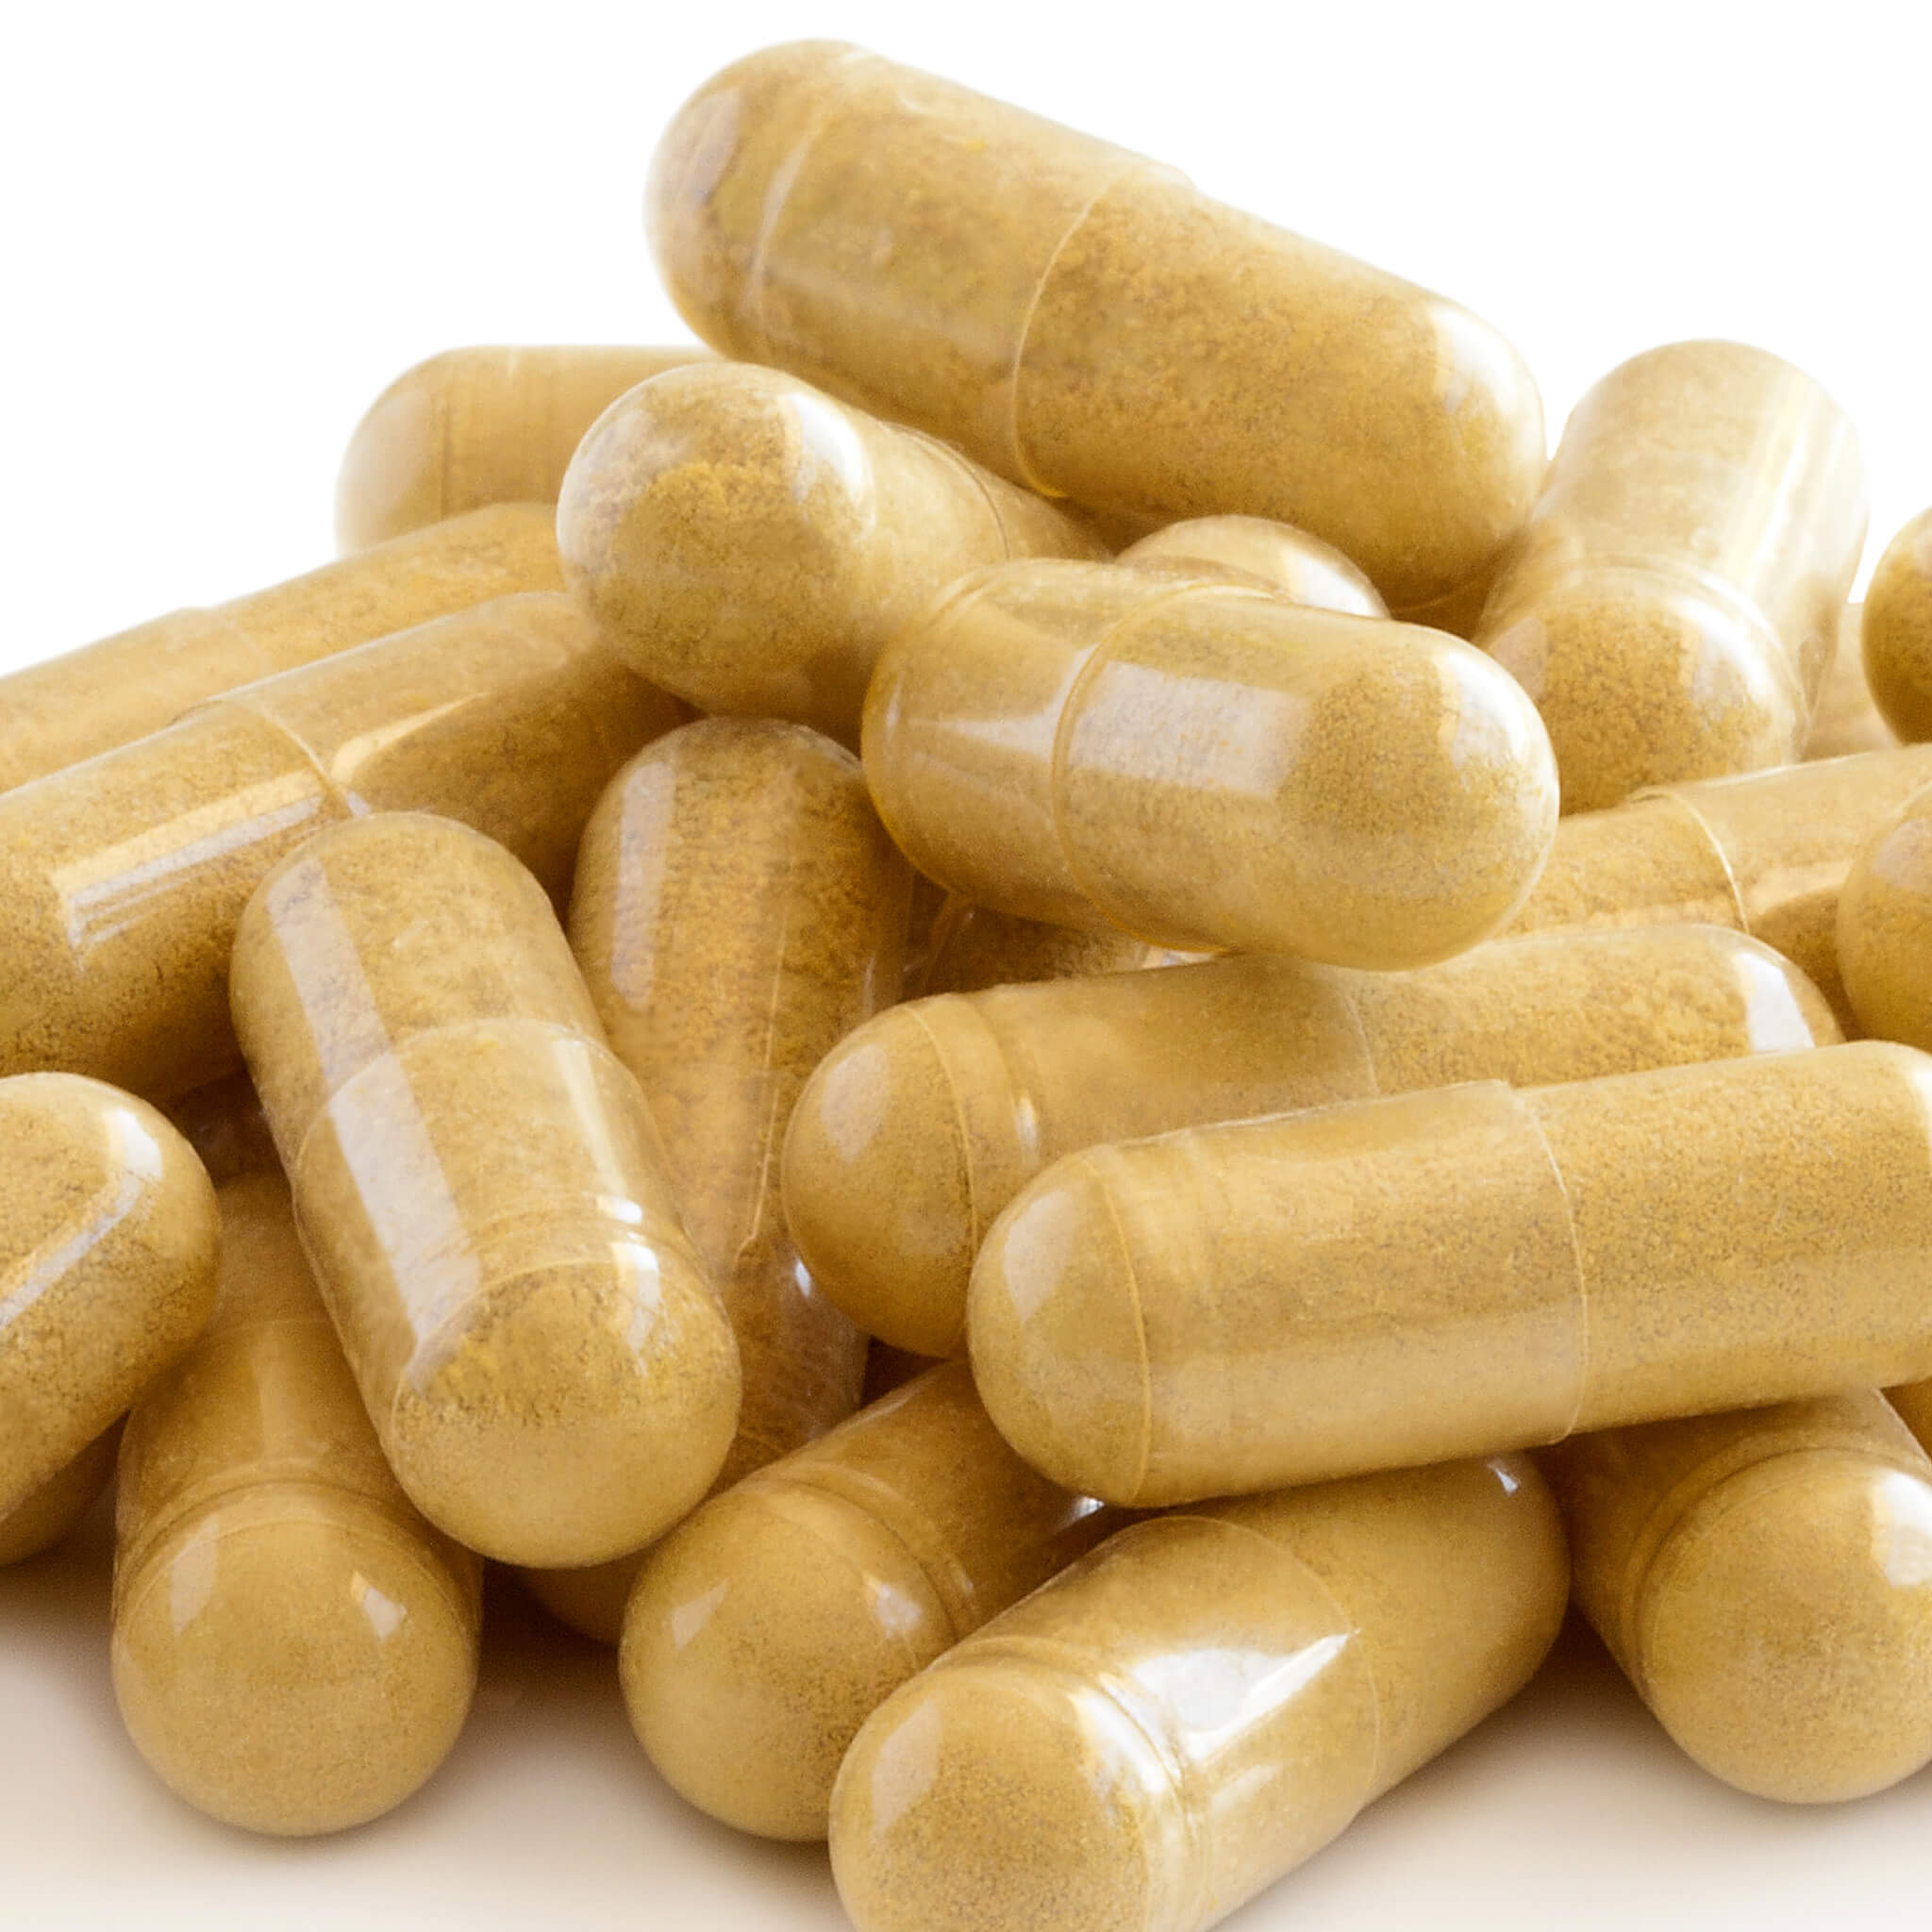 Product Page Key Ingredients: Vitamin E (Tocopherol)